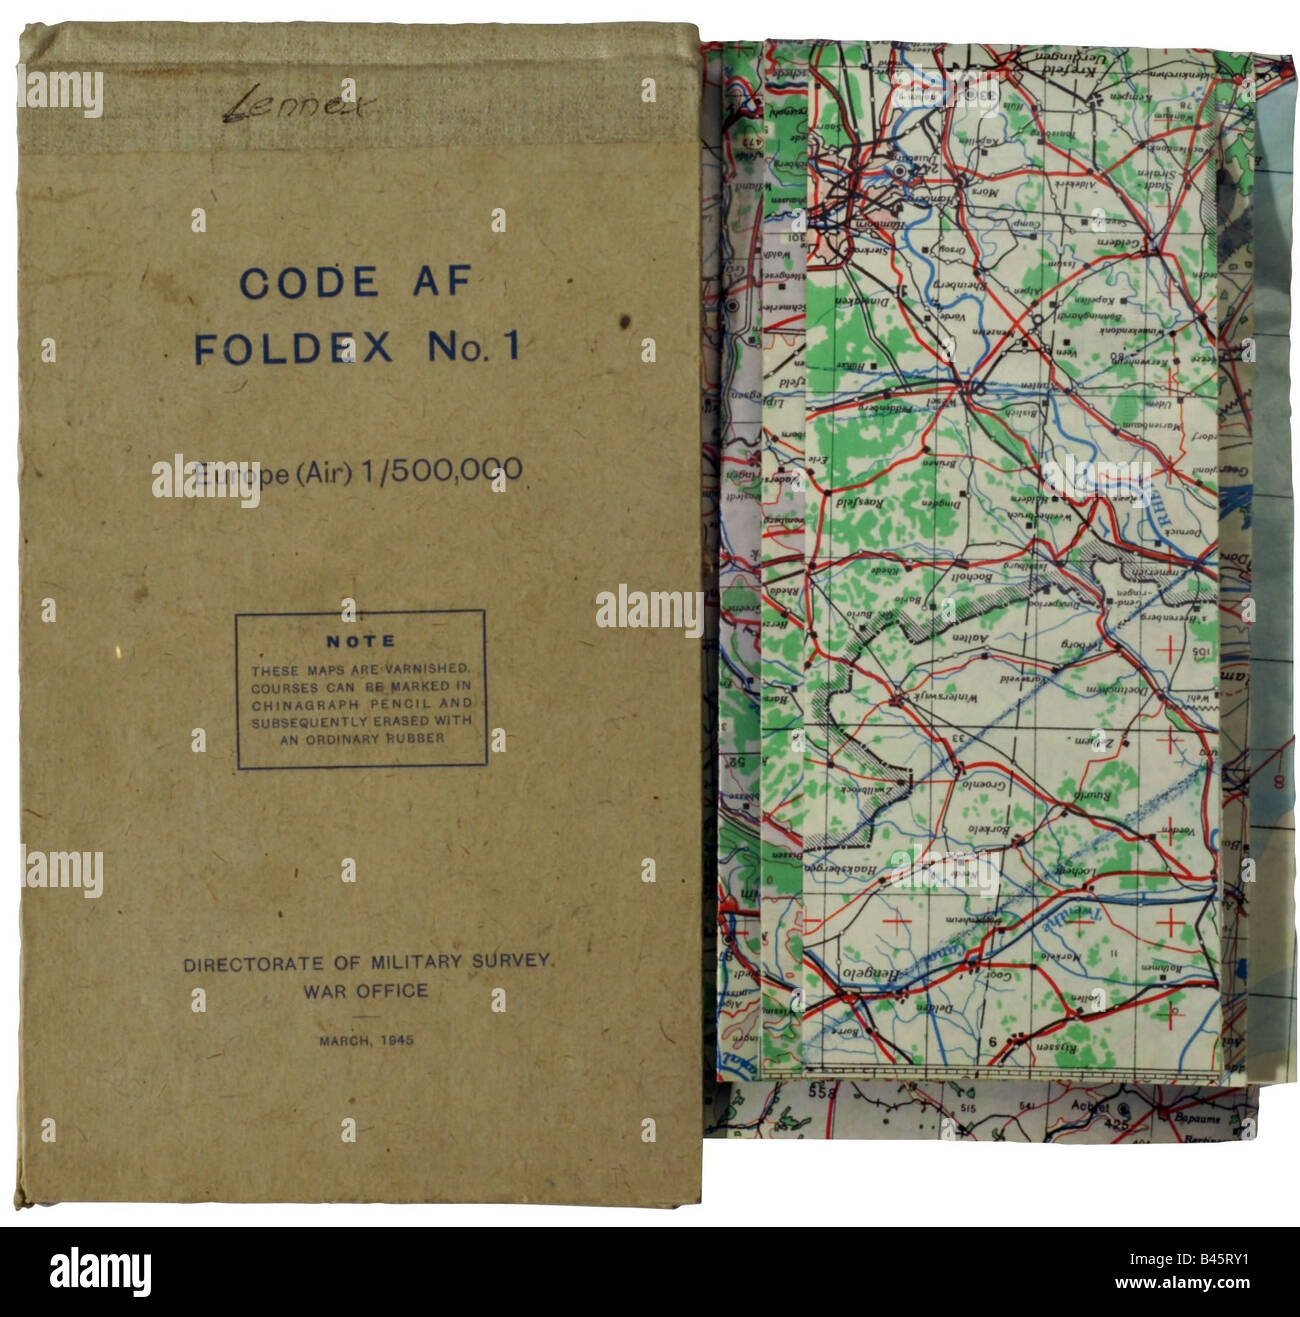 Event second world warwwii aerial warfare equipment great event second world warwwii aerial warfare equipment great britain map of germany march 1945 royal air force 20th centur sciox Choice Image